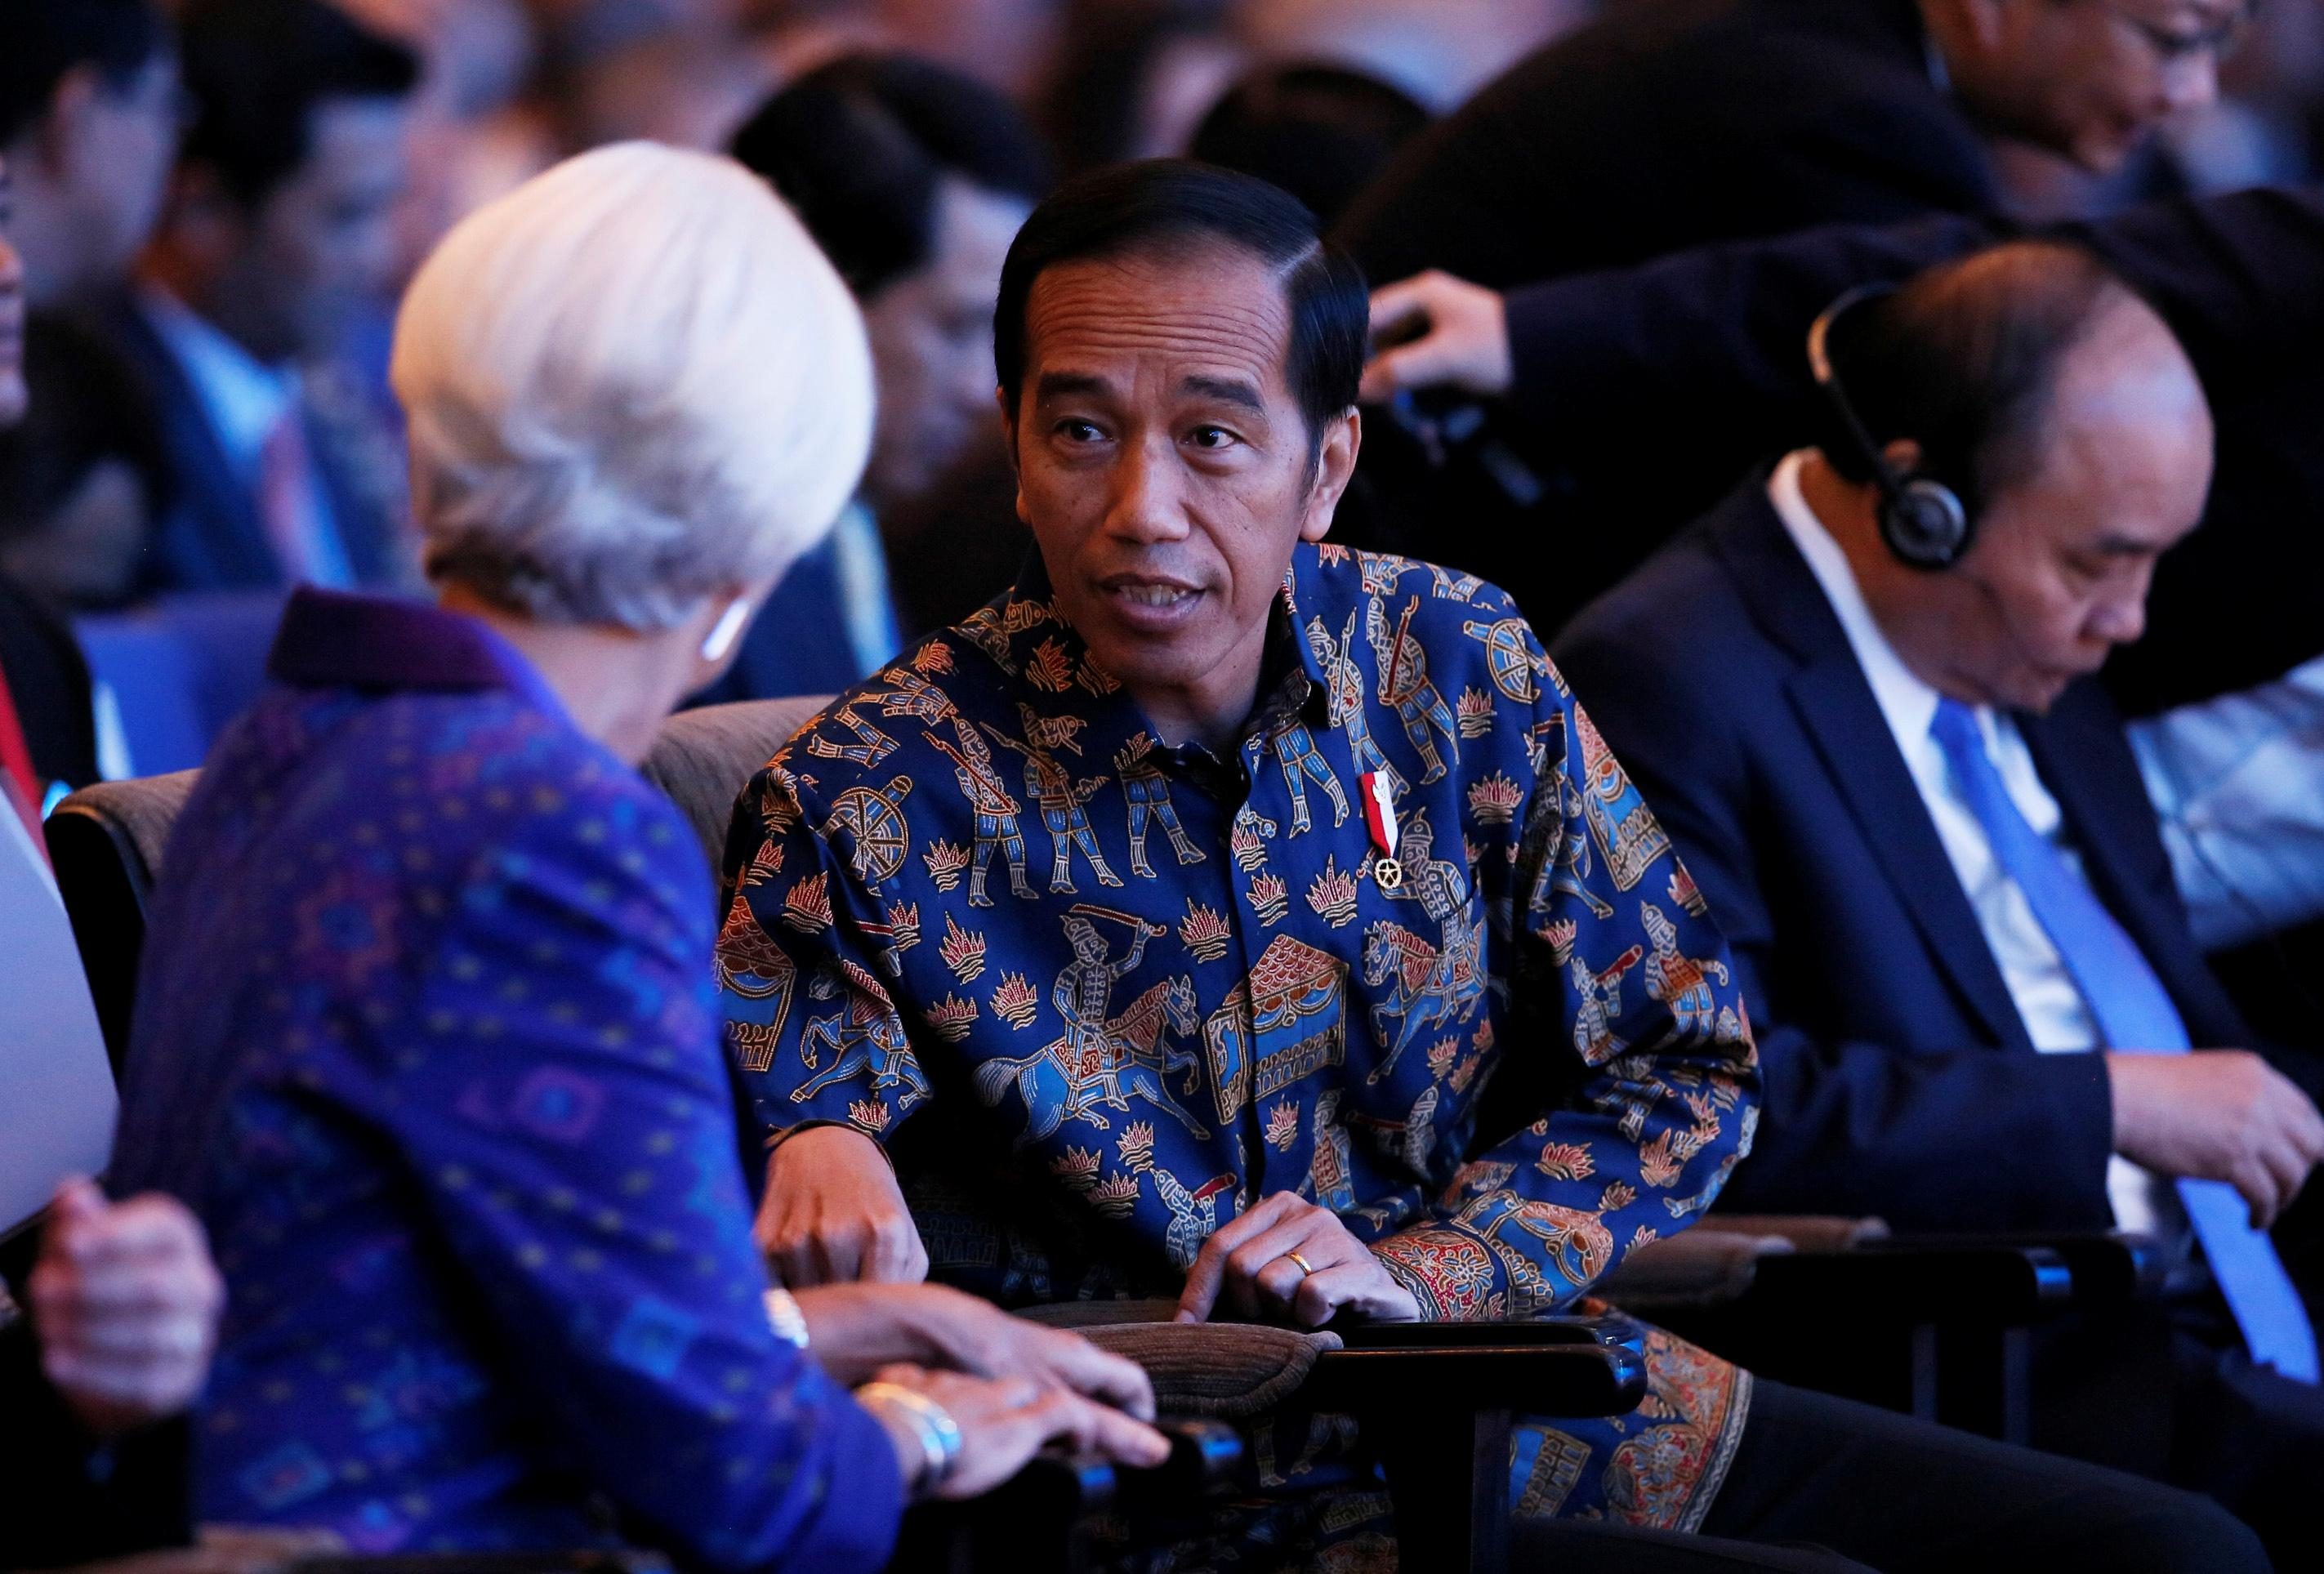 IMF Managing Director Christine Lagarde (L) talks to Indonesia President Joko Widodo during a plenary session at International Monetary Fund - World Bank Annual Meeting 2018 in Nusa Dua, Bali, Indonesia, October 12, 2018. Johannes P. Christo